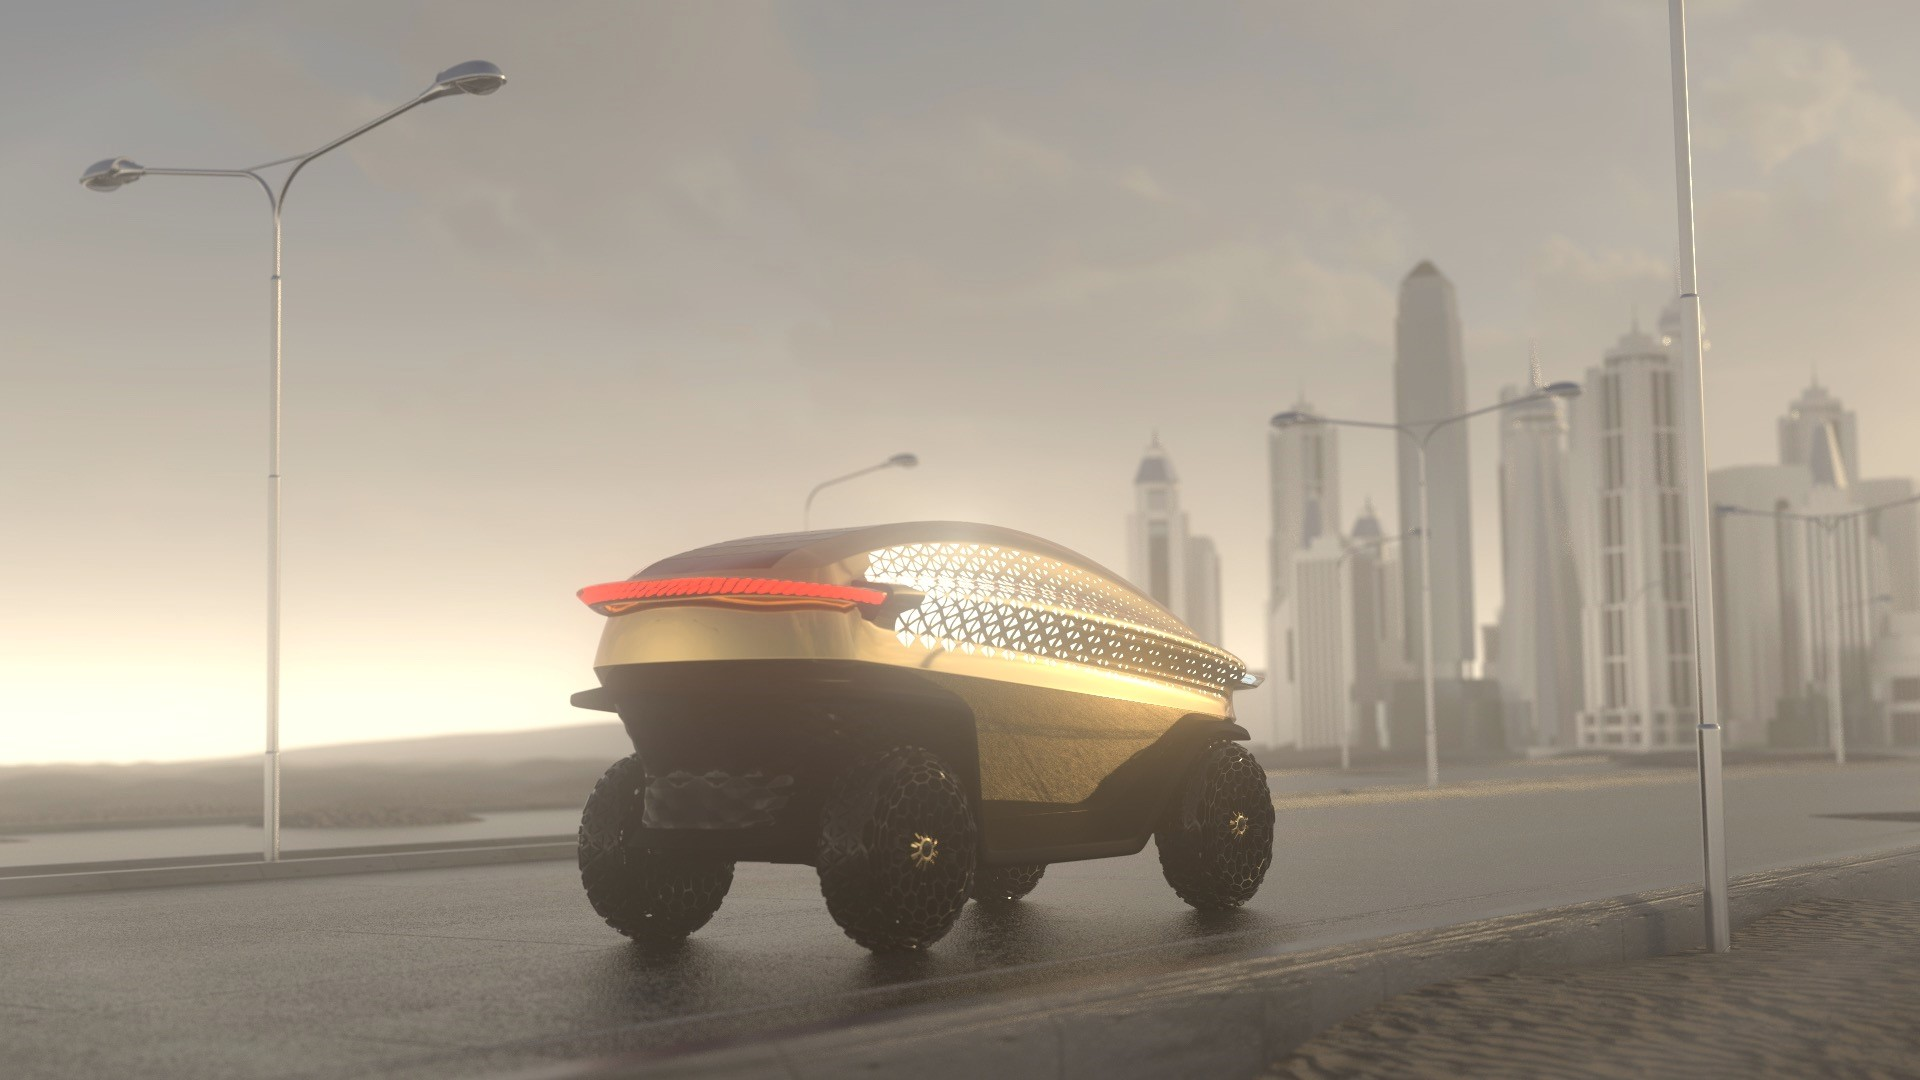 Digital render of a customized LOCI vehicle. Image via BigRep.